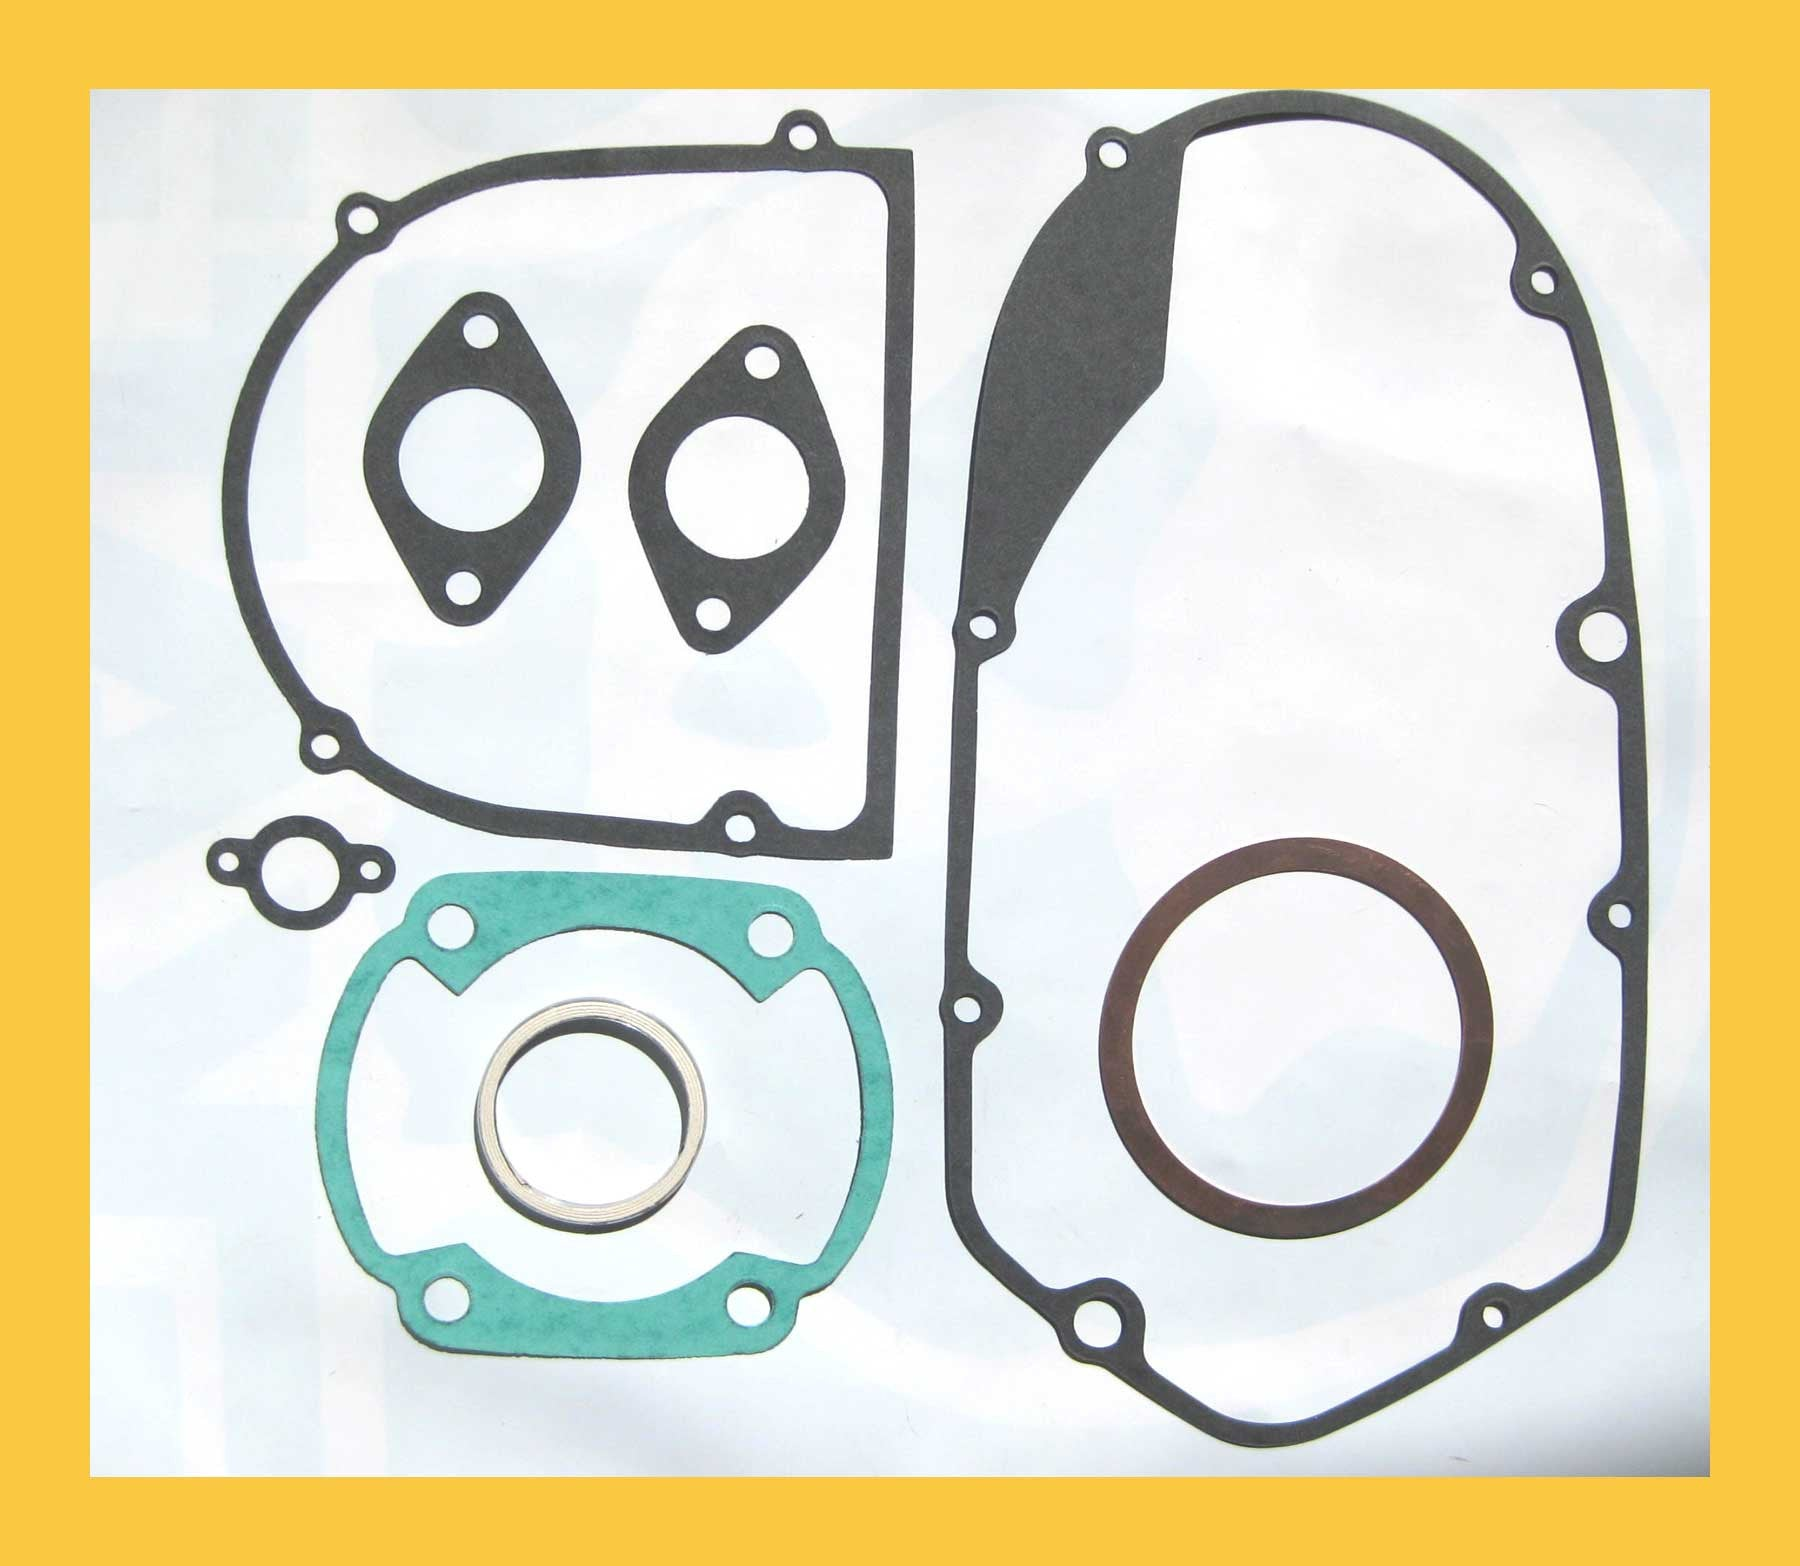 Yamaha RT360 Engine Gasket Set Kit RT1 RT2 RT3 RT 360 1969 1970 1971 1972 1973